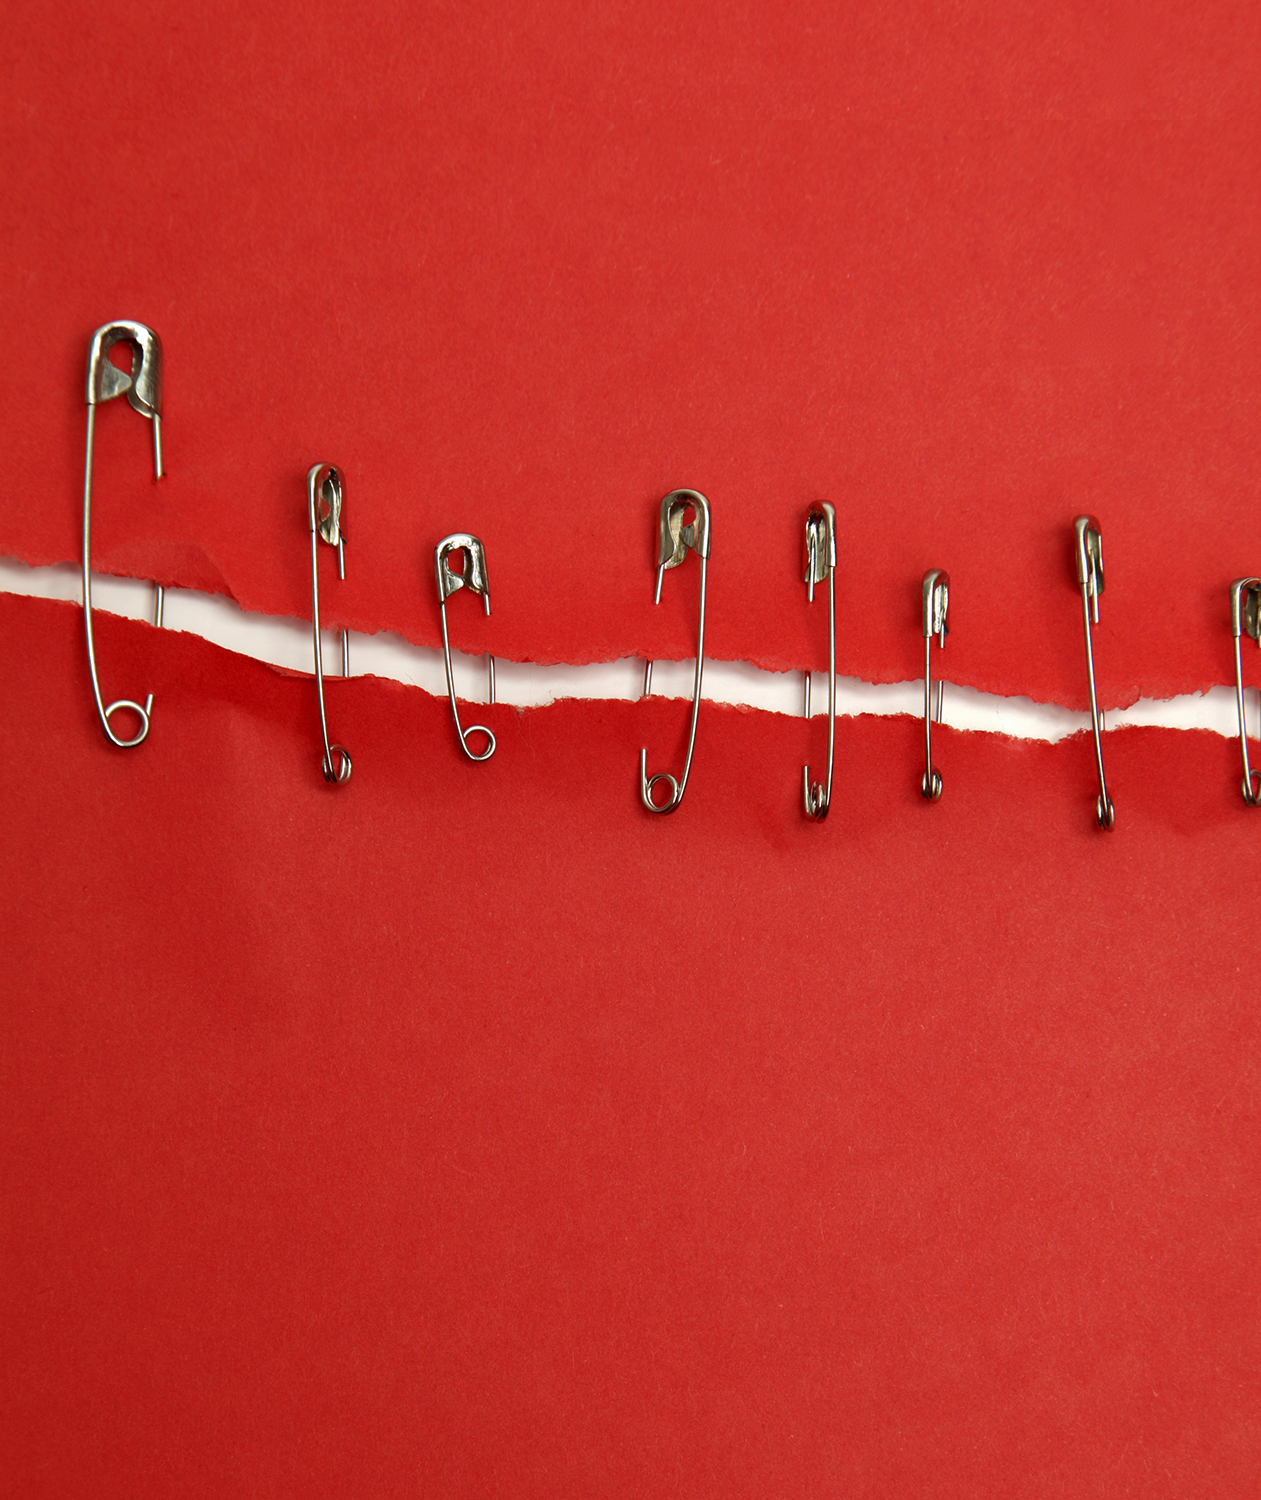 Safety pins holding fabric together